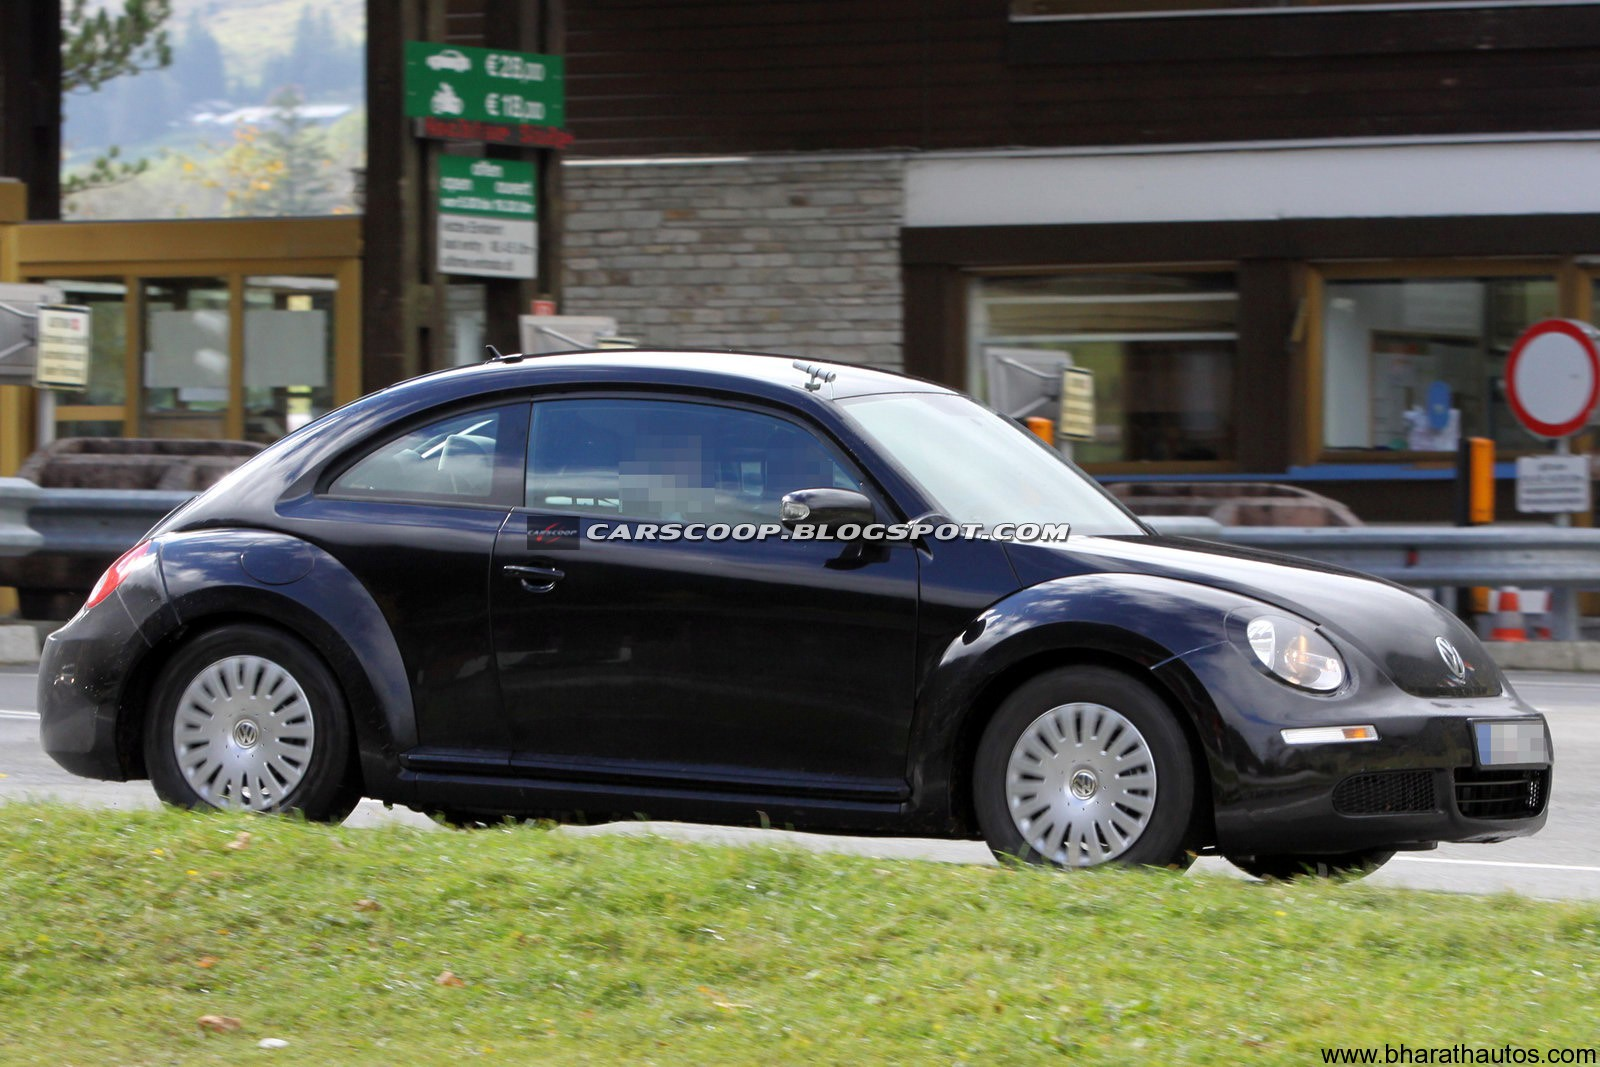 2012 Volkswagen Beetle To Be Unveiled On April 18th